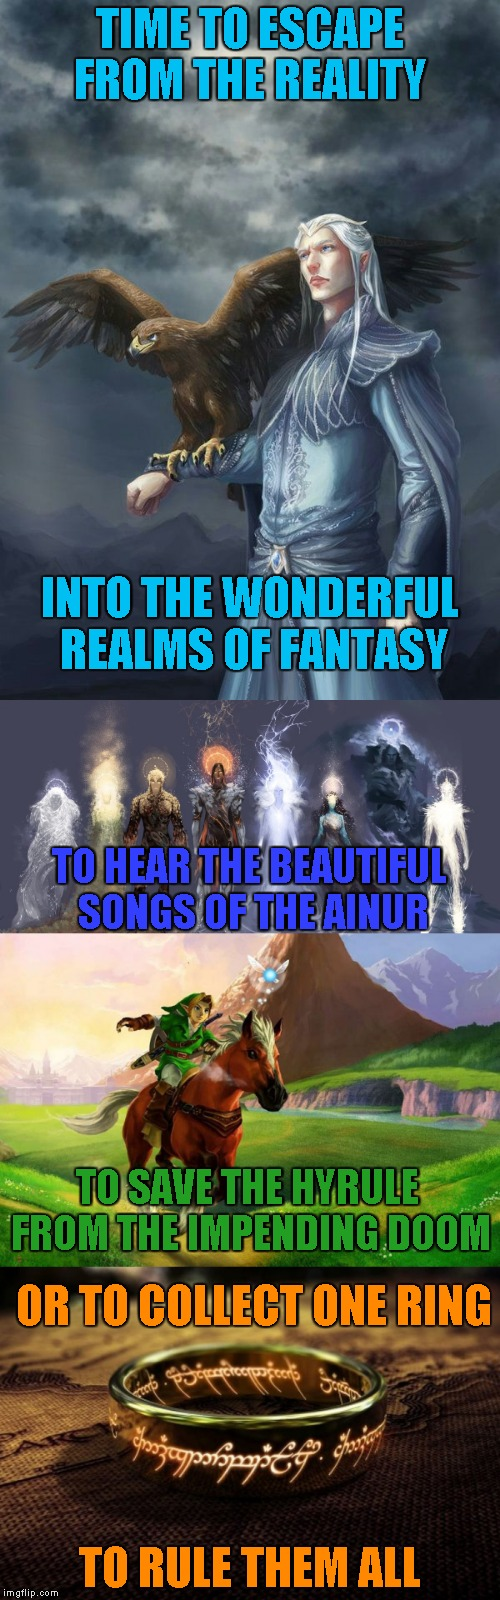 Welcome to the wonderful realms of the Fantasy Week,a PowerMetalhead and Woldythekitty event Jan. 16th-21st !!! | TIME TO ESCAPE FROM THE REALITY TO RULE THEM ALL INTO THE WONDERFUL REALMS OF FANTASY TO HEAR THE BEAUTIFUL SONGS OF THE AINUR TO SAVE THE H | image tagged in memes,fantasy week,silmarillion,the legend of zelda,lord of the rings,powermetalhead | made w/ Imgflip meme maker